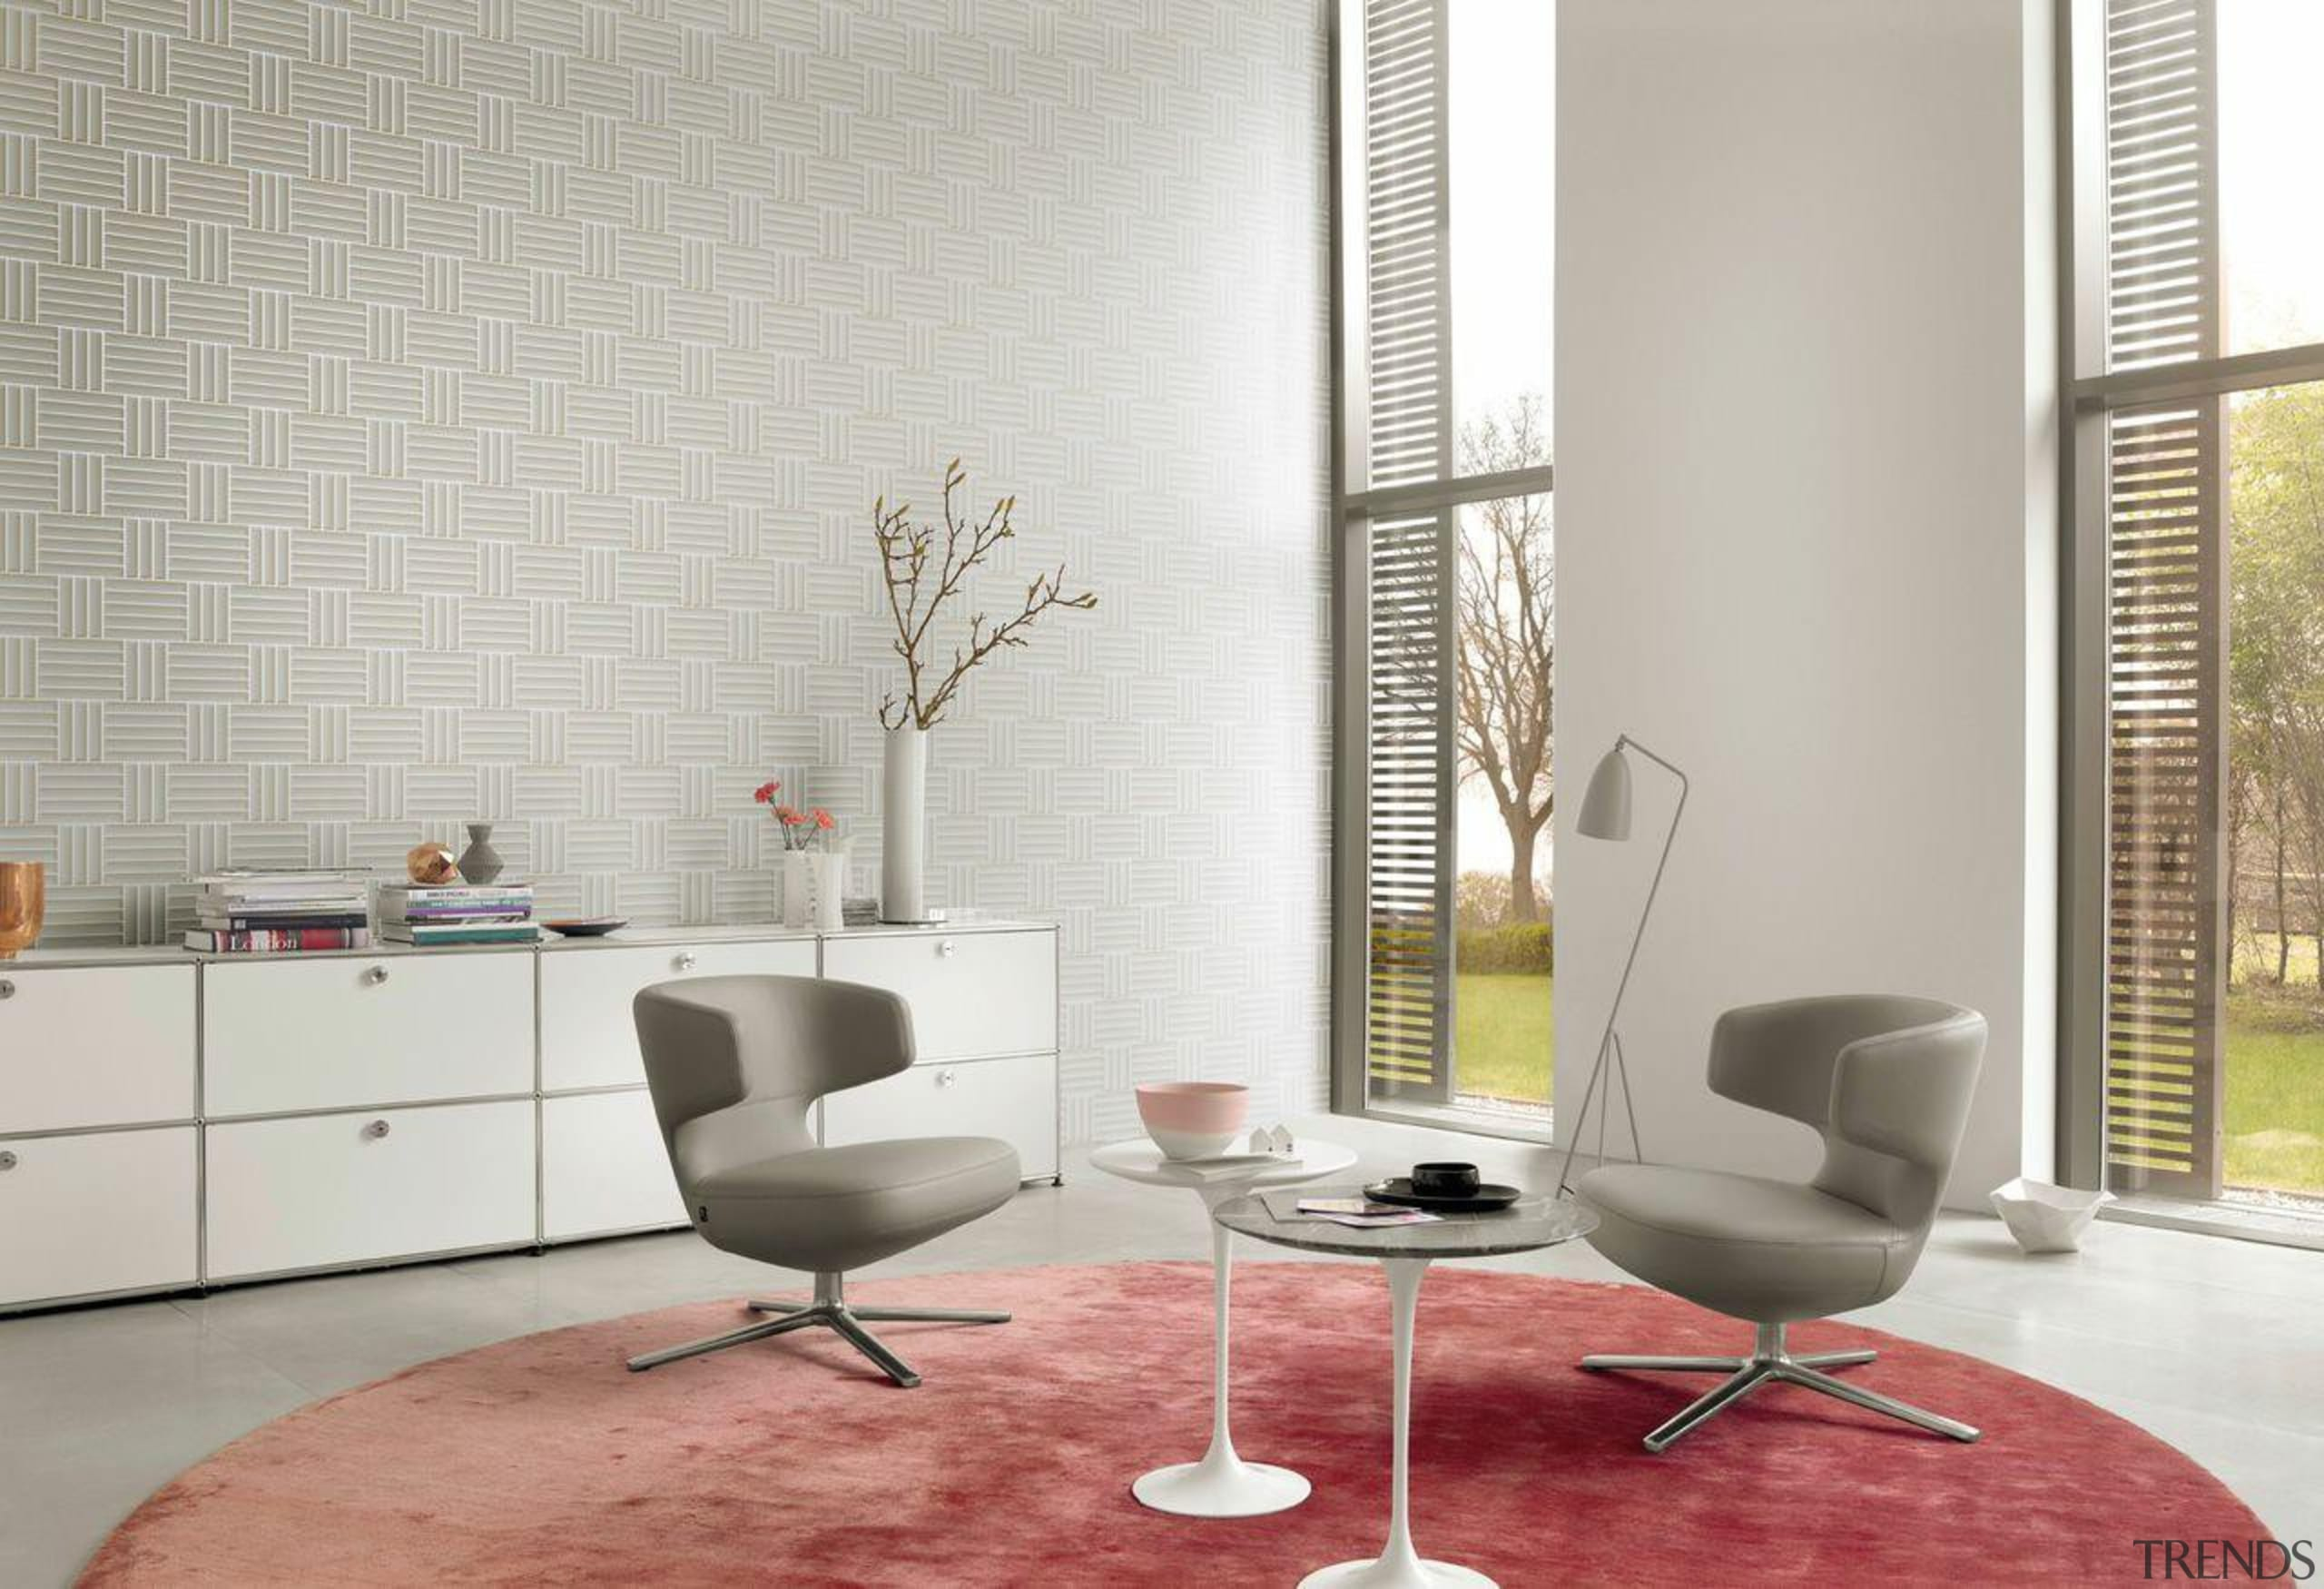 The Sky Lounge 2016 collection from the Rasch chair, floor, flooring, furniture, interior design, living room, table, wall, window, window covering, gray